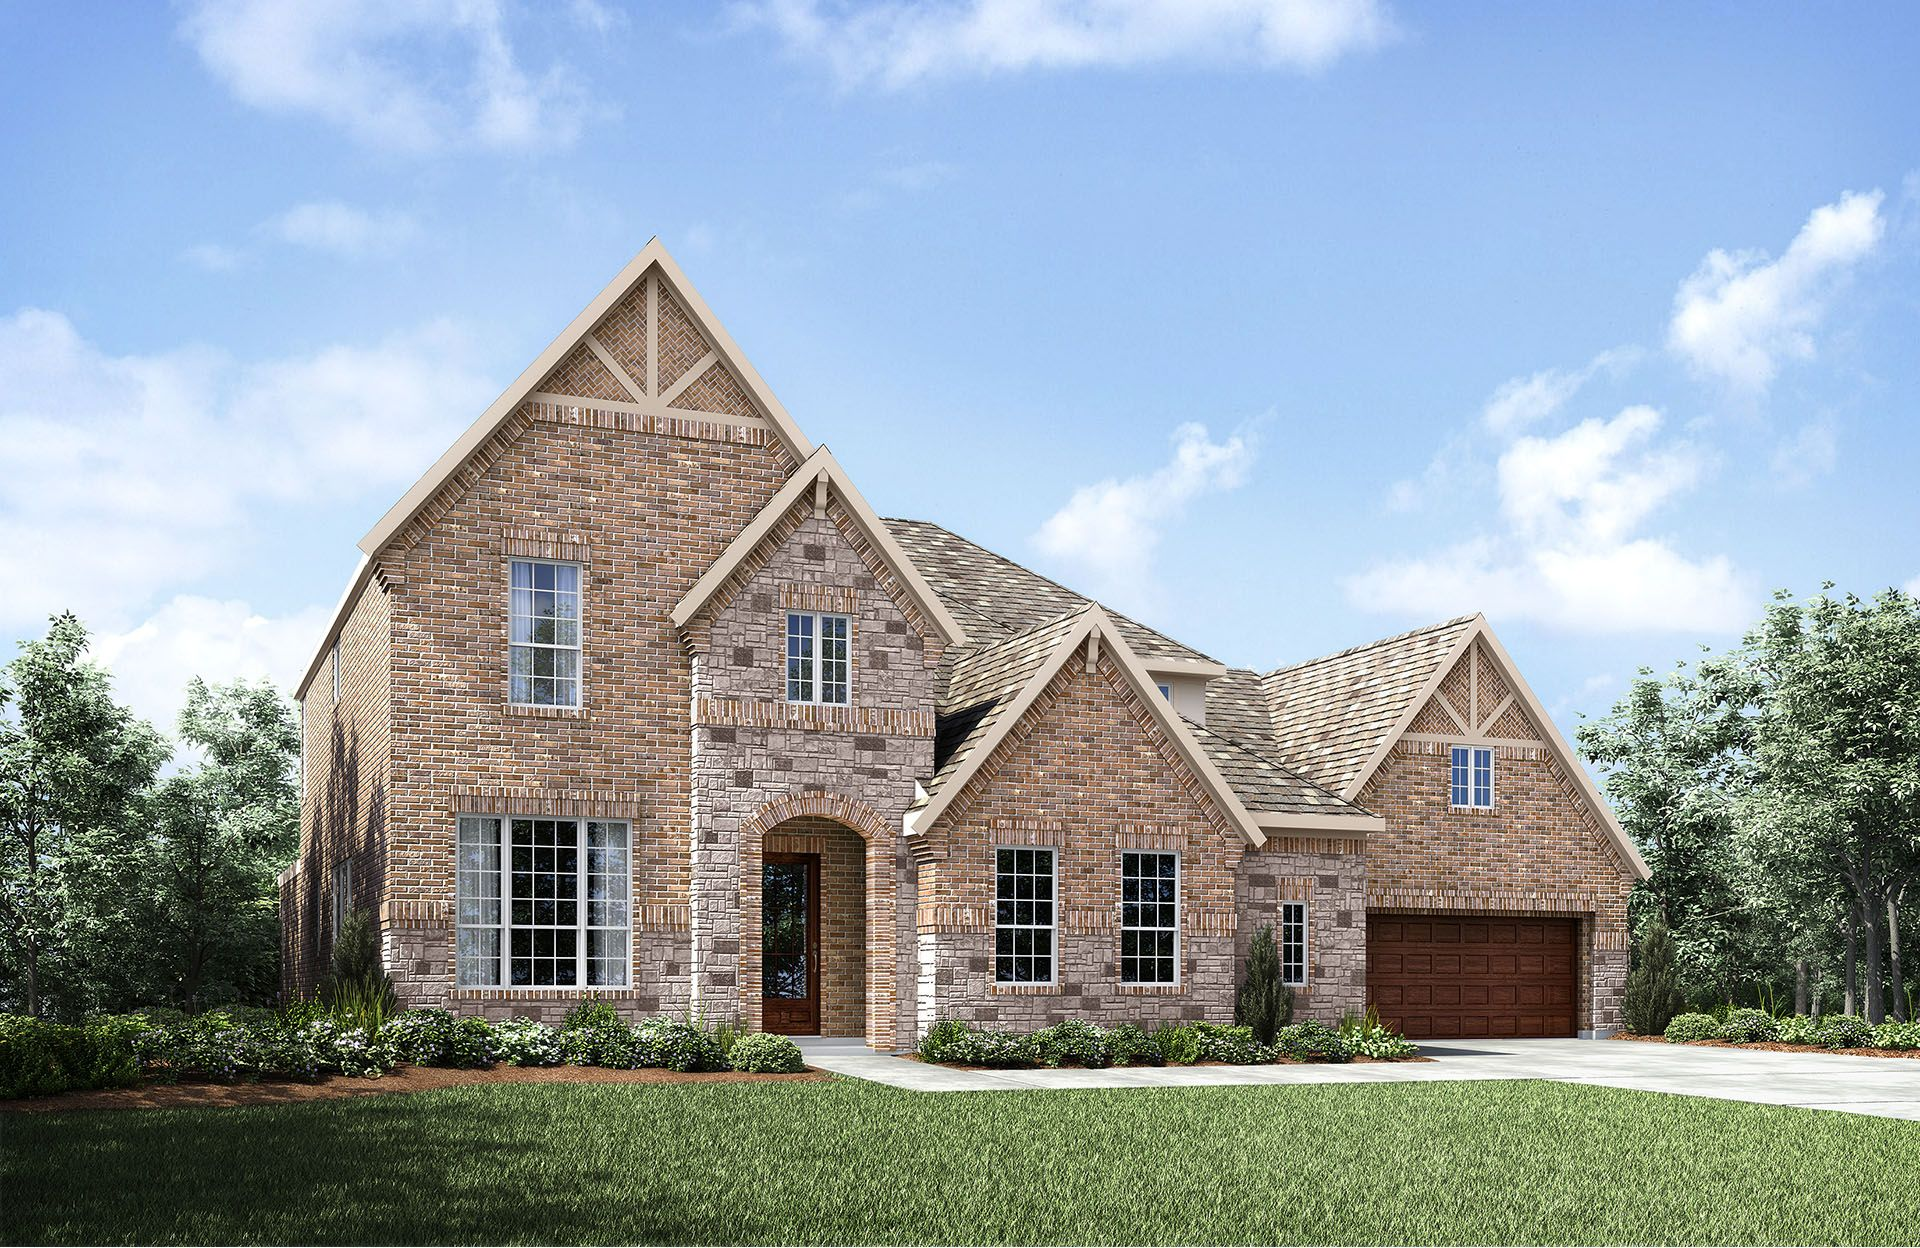 Single Family for Active at Harper's Preserve - Sommers Model Home Coming Soon! Conroe, Texas 77385 United States